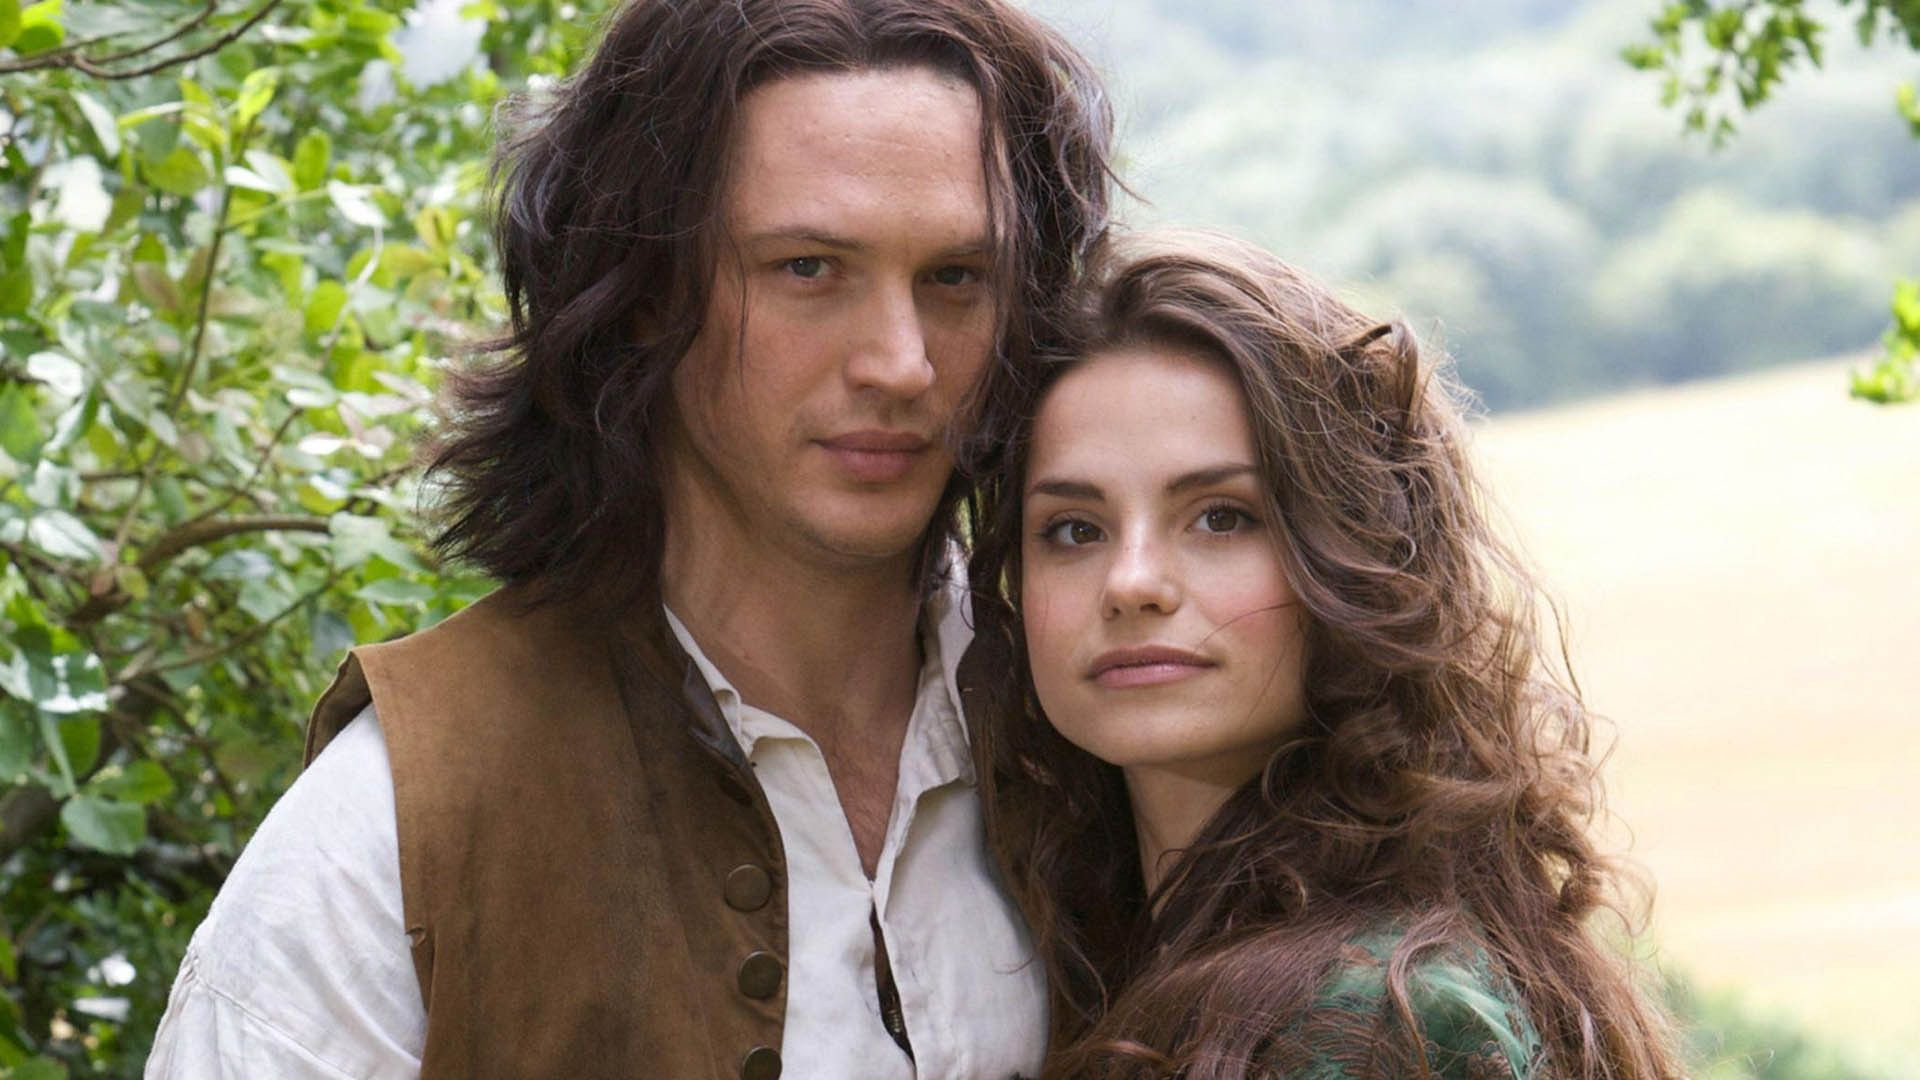 Tomas and Shariotte (Wuthering Heights 2009) Том харди